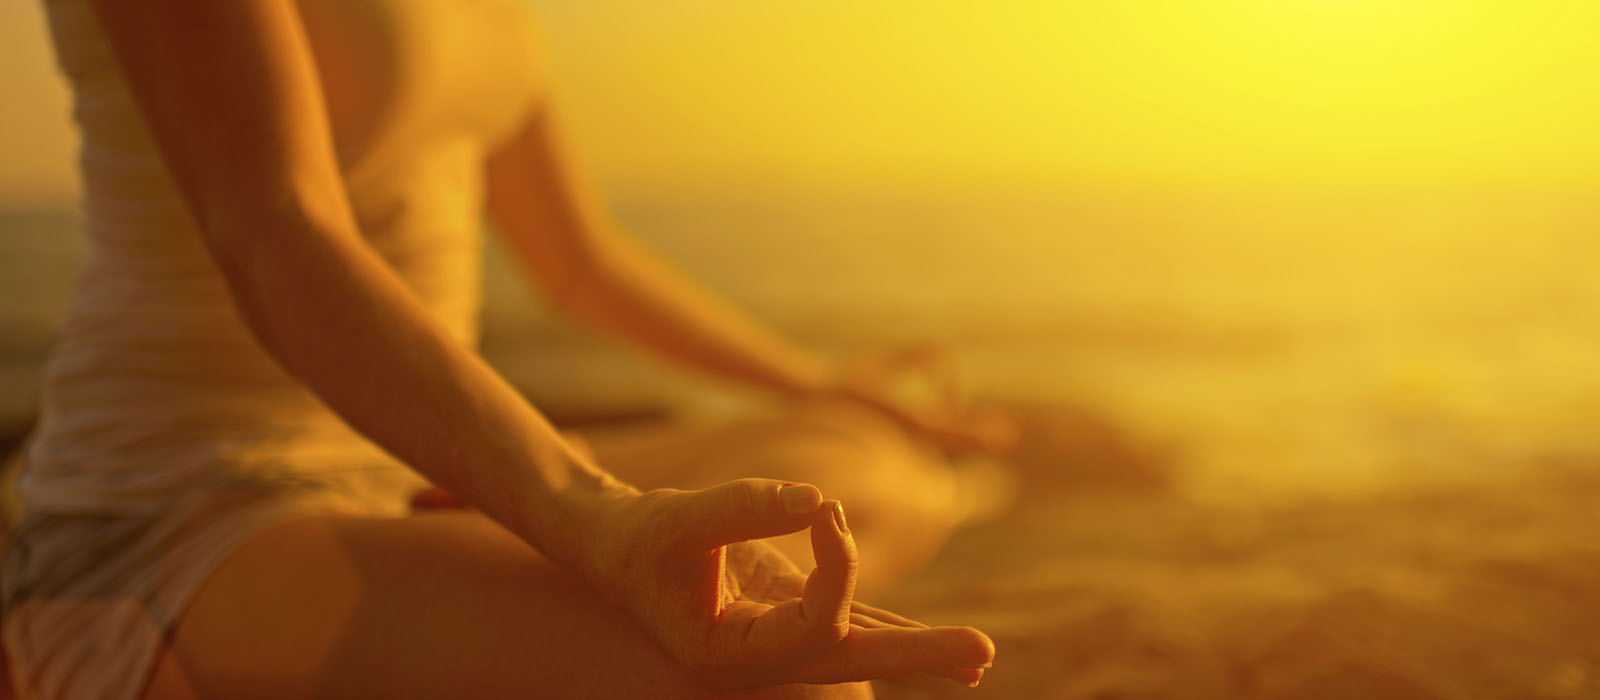 Choose a yoga class that emphasizes how to use your breath correctly by practising pranayama. This practise provides a calming connection between the mind and the body and addictions like smoking can shift in due course.